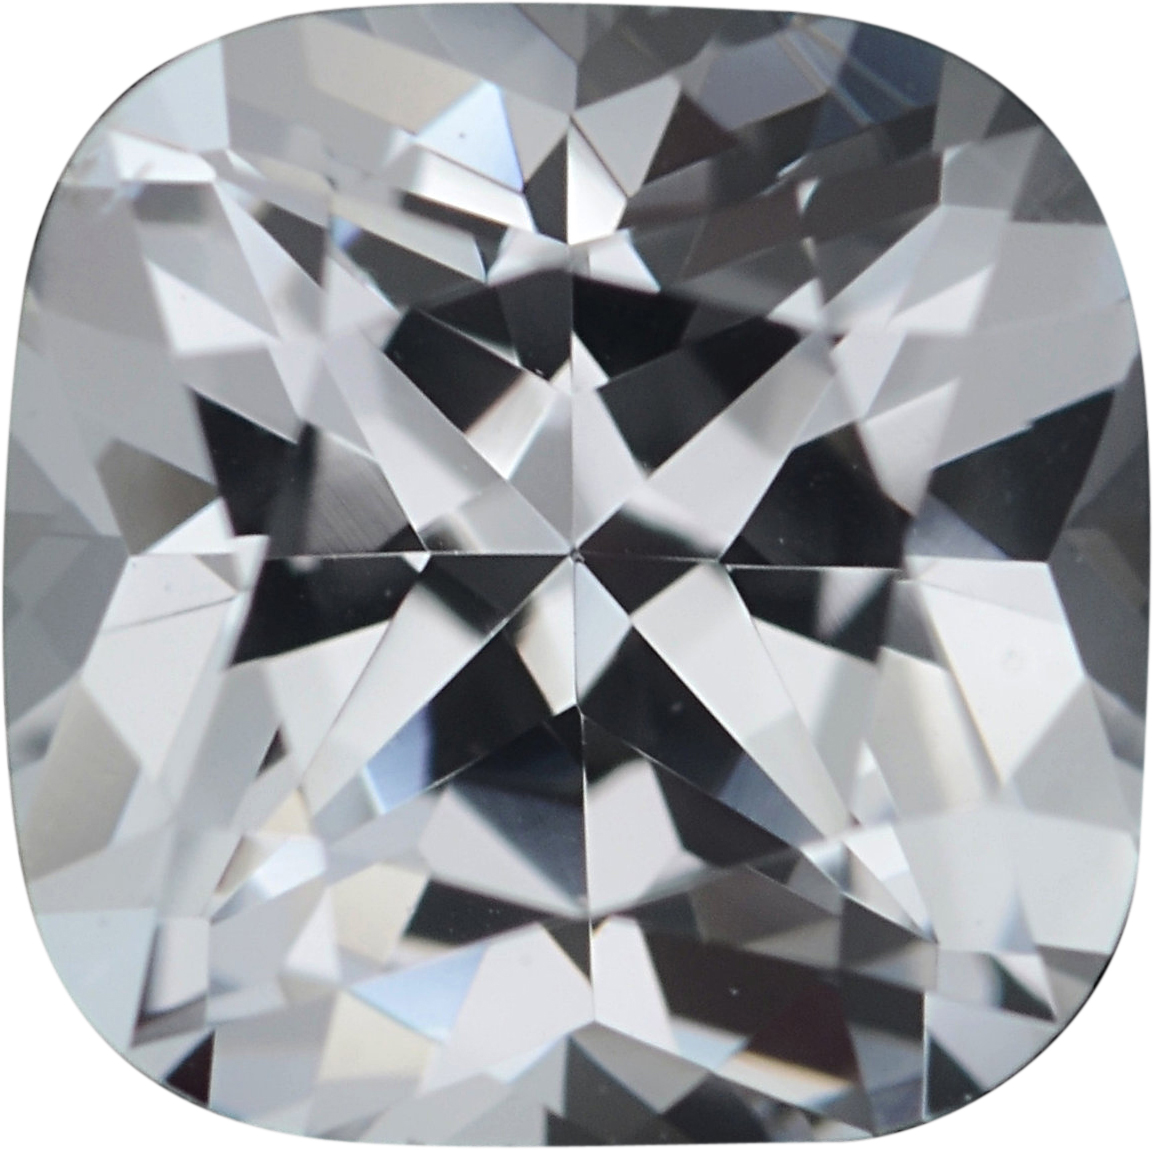 0.92 carats Antique Square Cut Genuine White Sapphire Gem, Near Colorless, Hint of Blue, 5.56 x 5.56 mm